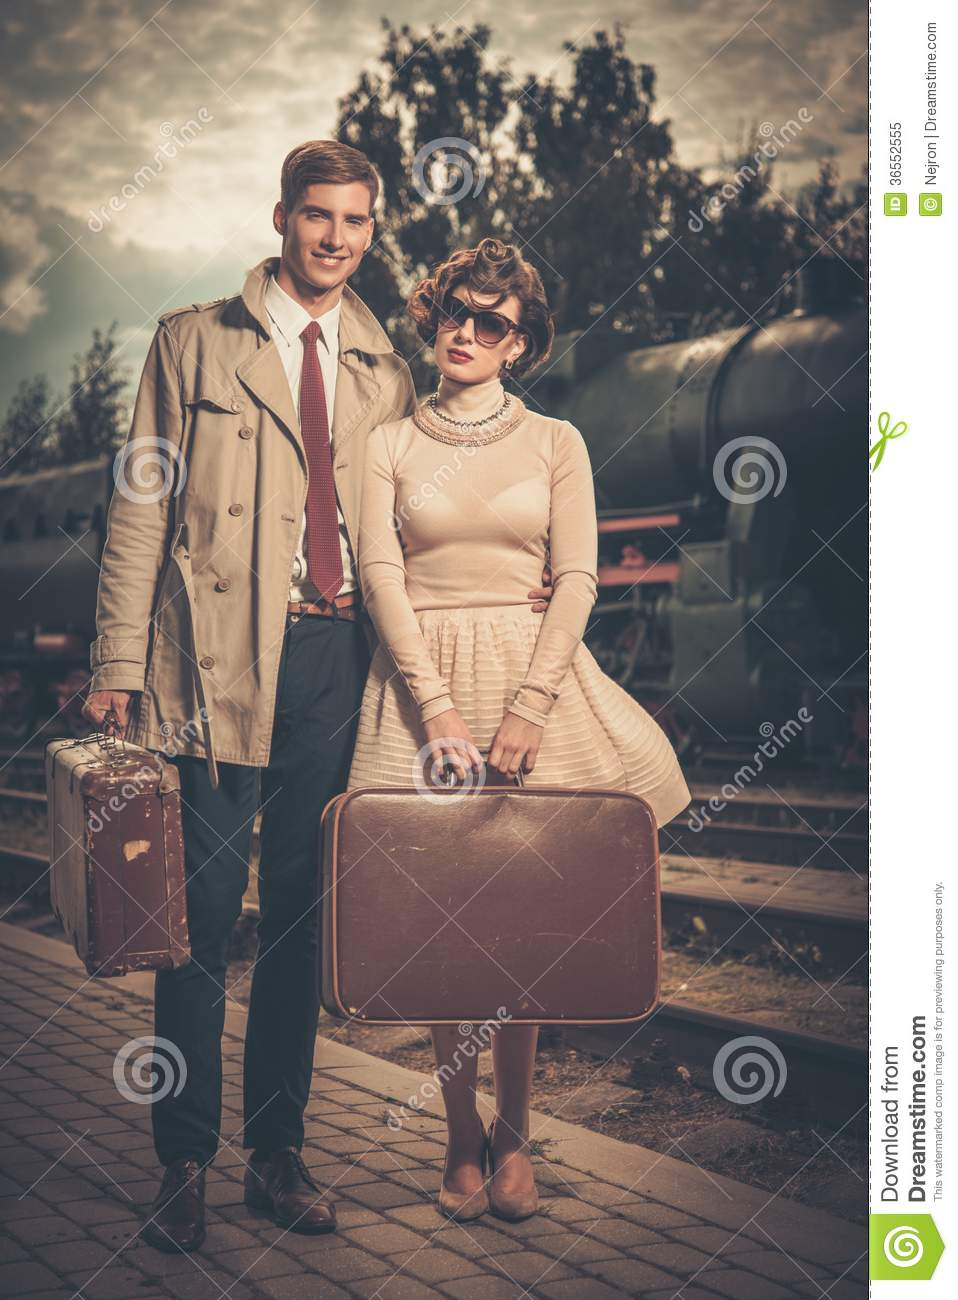 Vintage Style Prom Couples